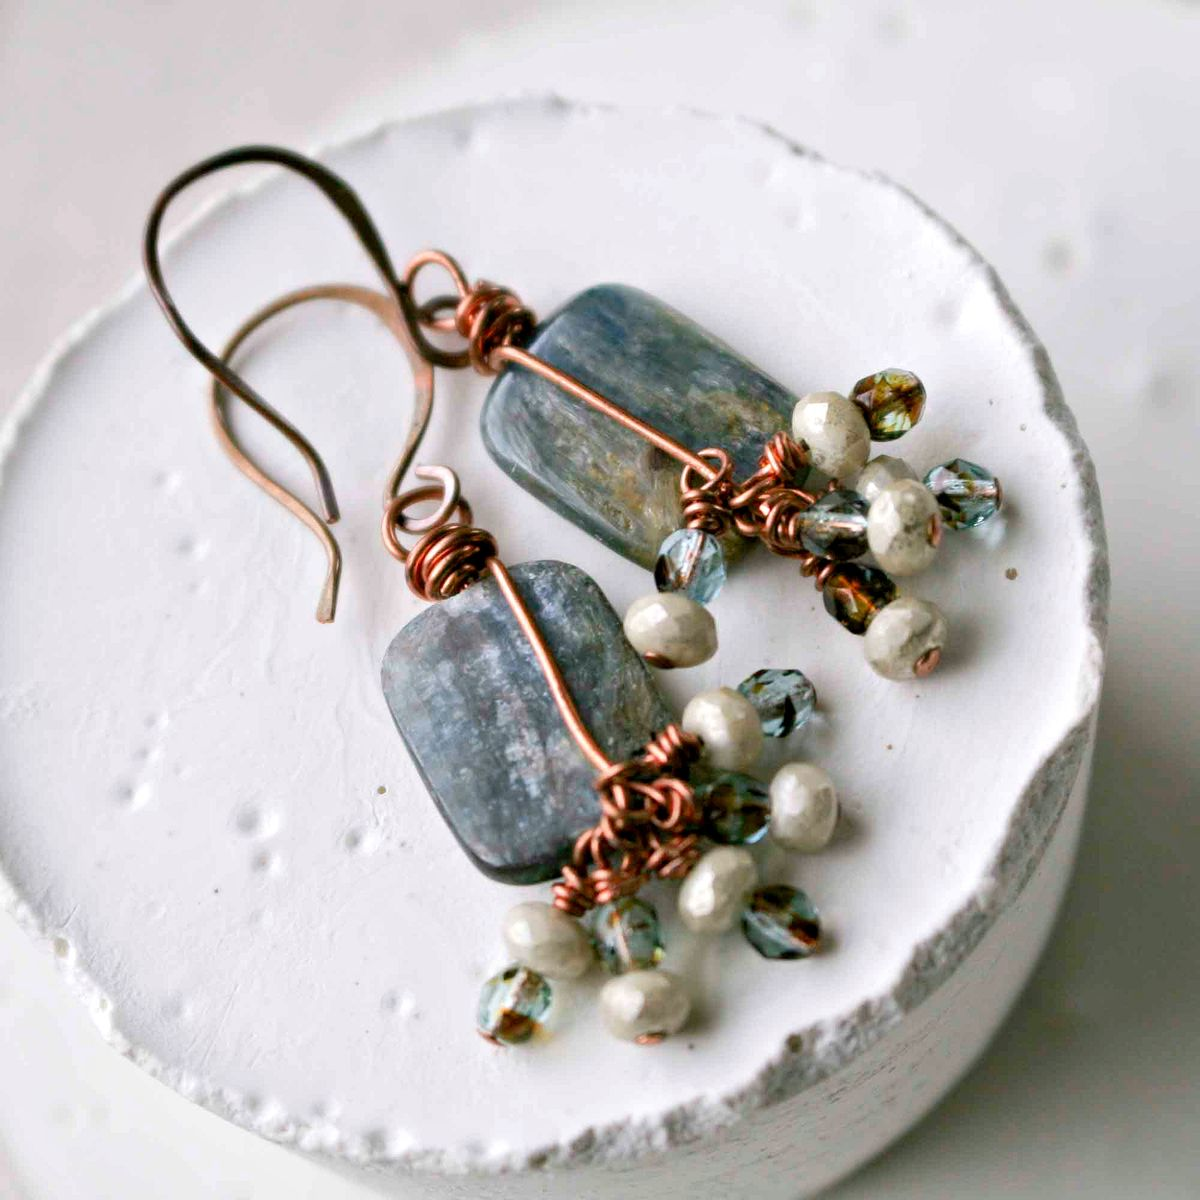 Rectangular Icy Blue Kyanite Dangle Earrings with Copper Forged Earwires and Glass Beads - product image